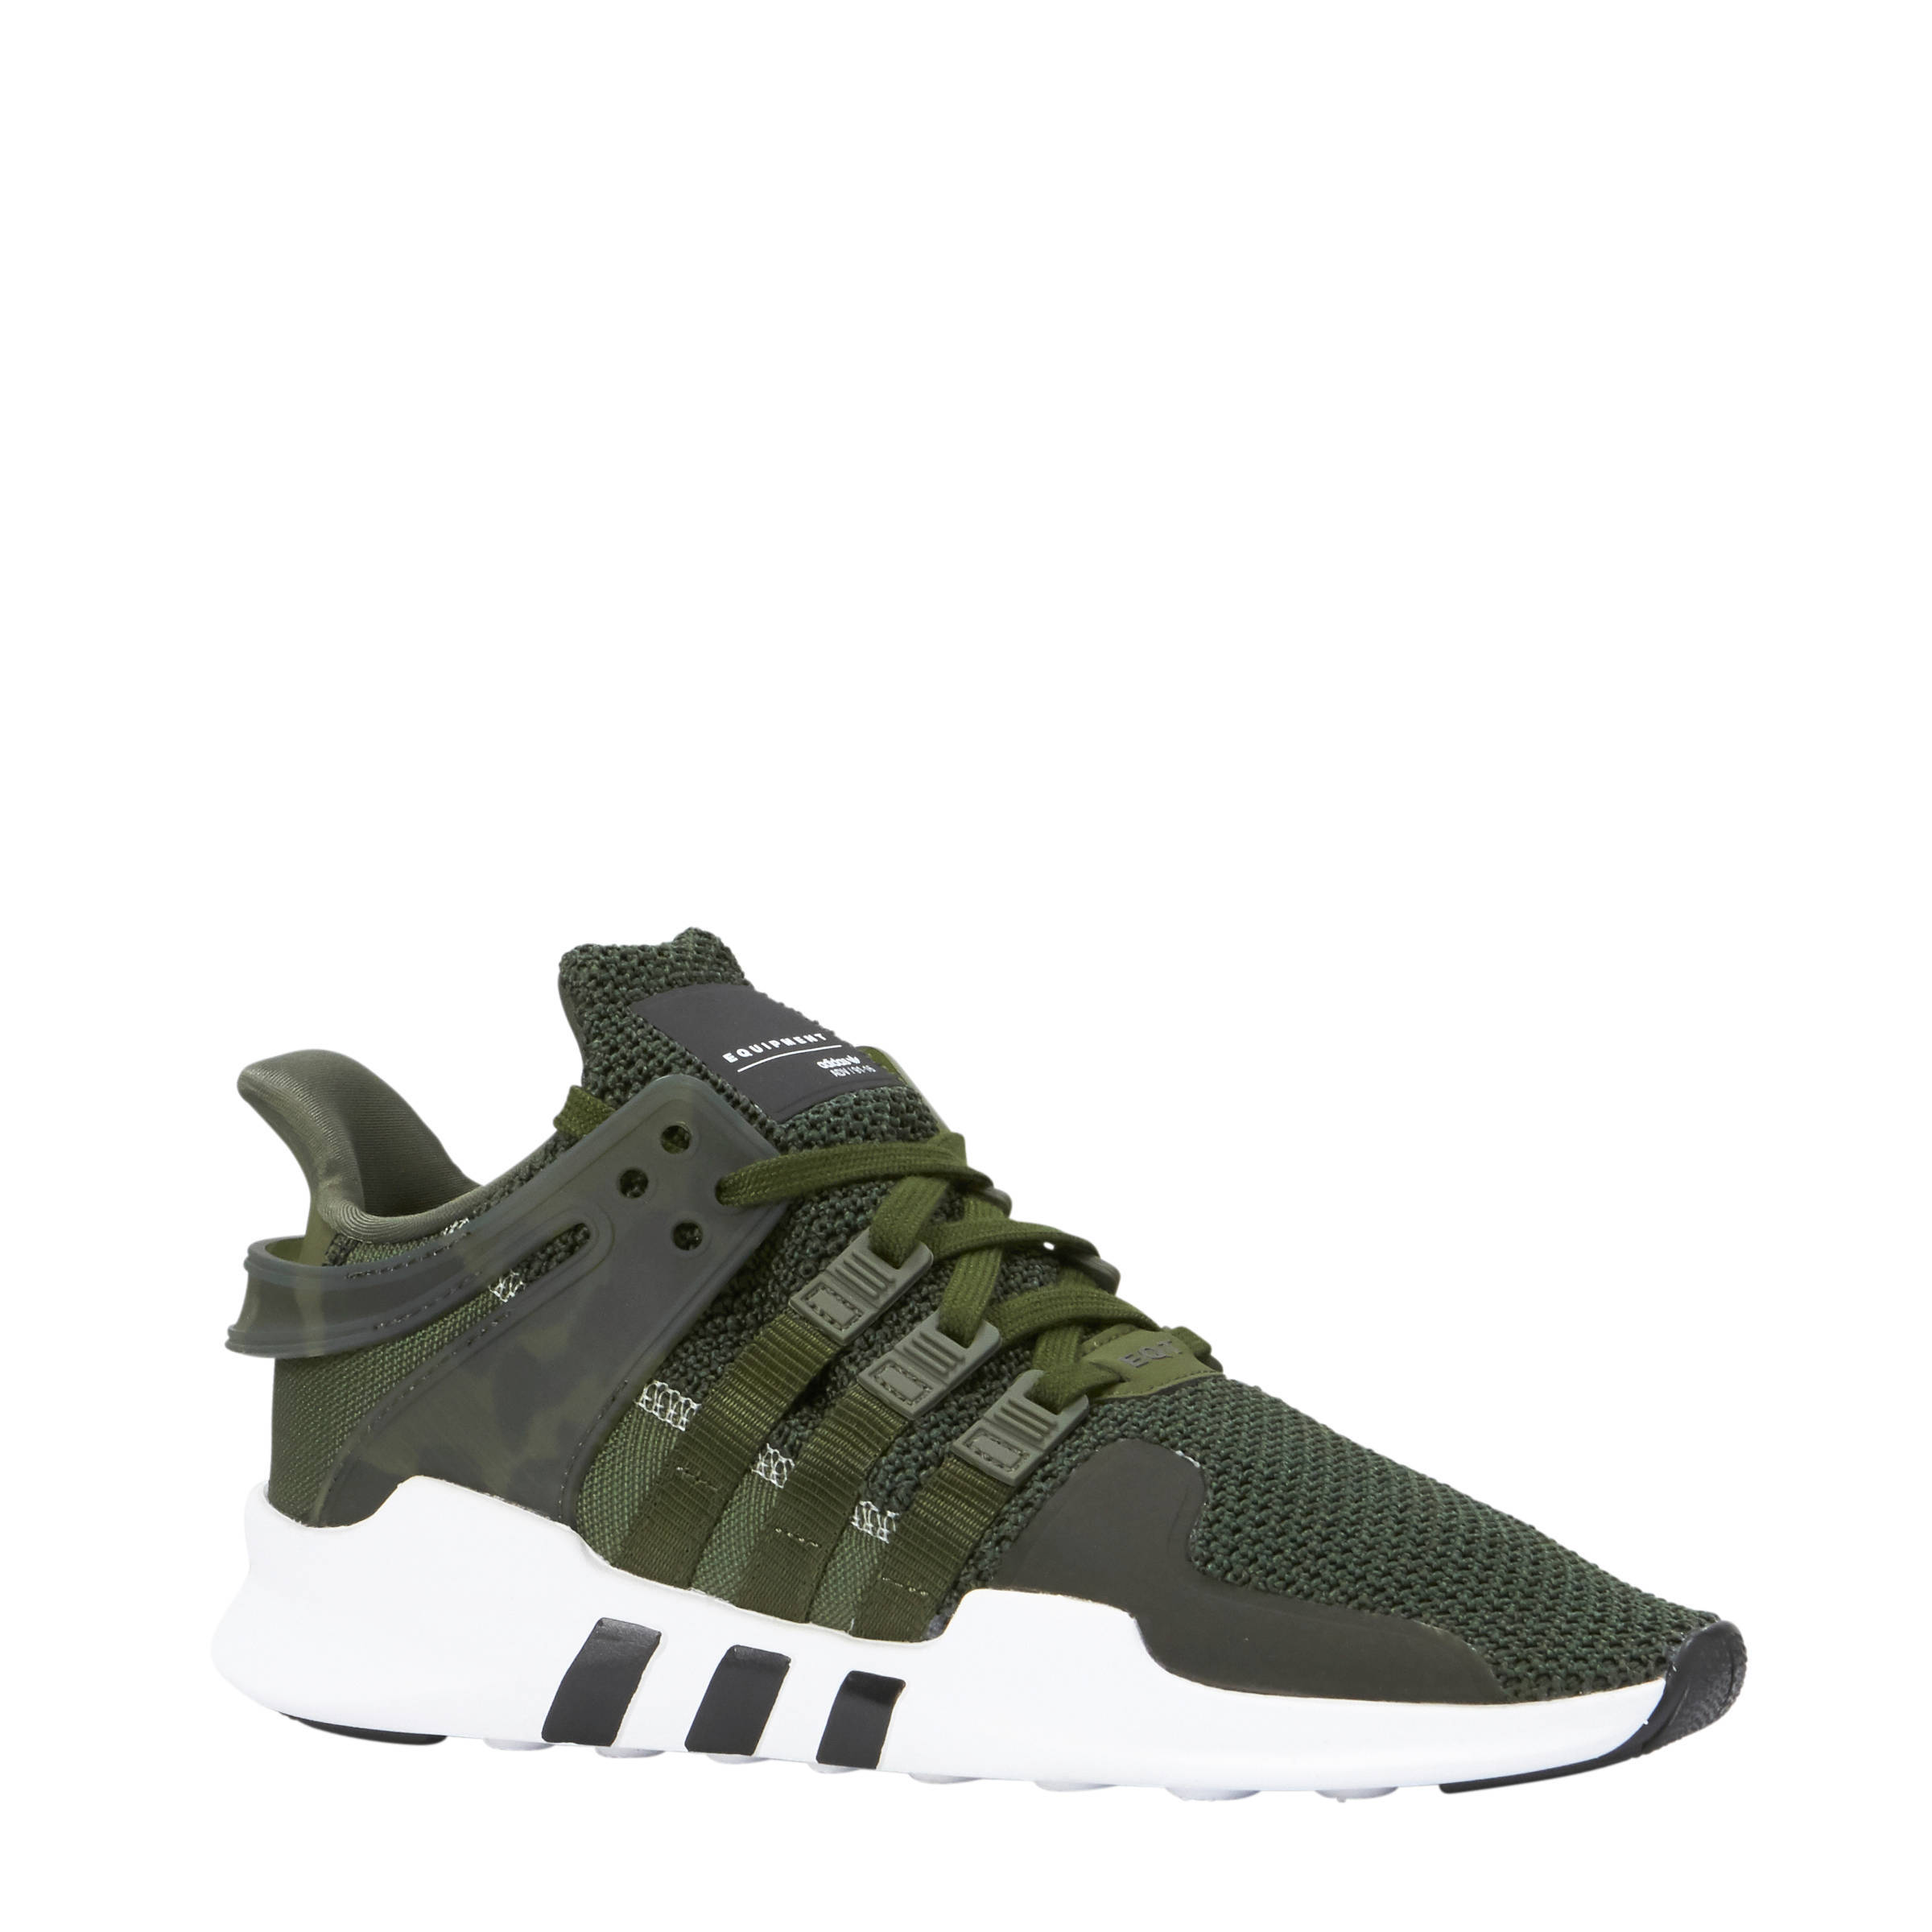 reputable site 660dc a355a adidas originals EQT Support ADV sneakers donkergroen  wehka